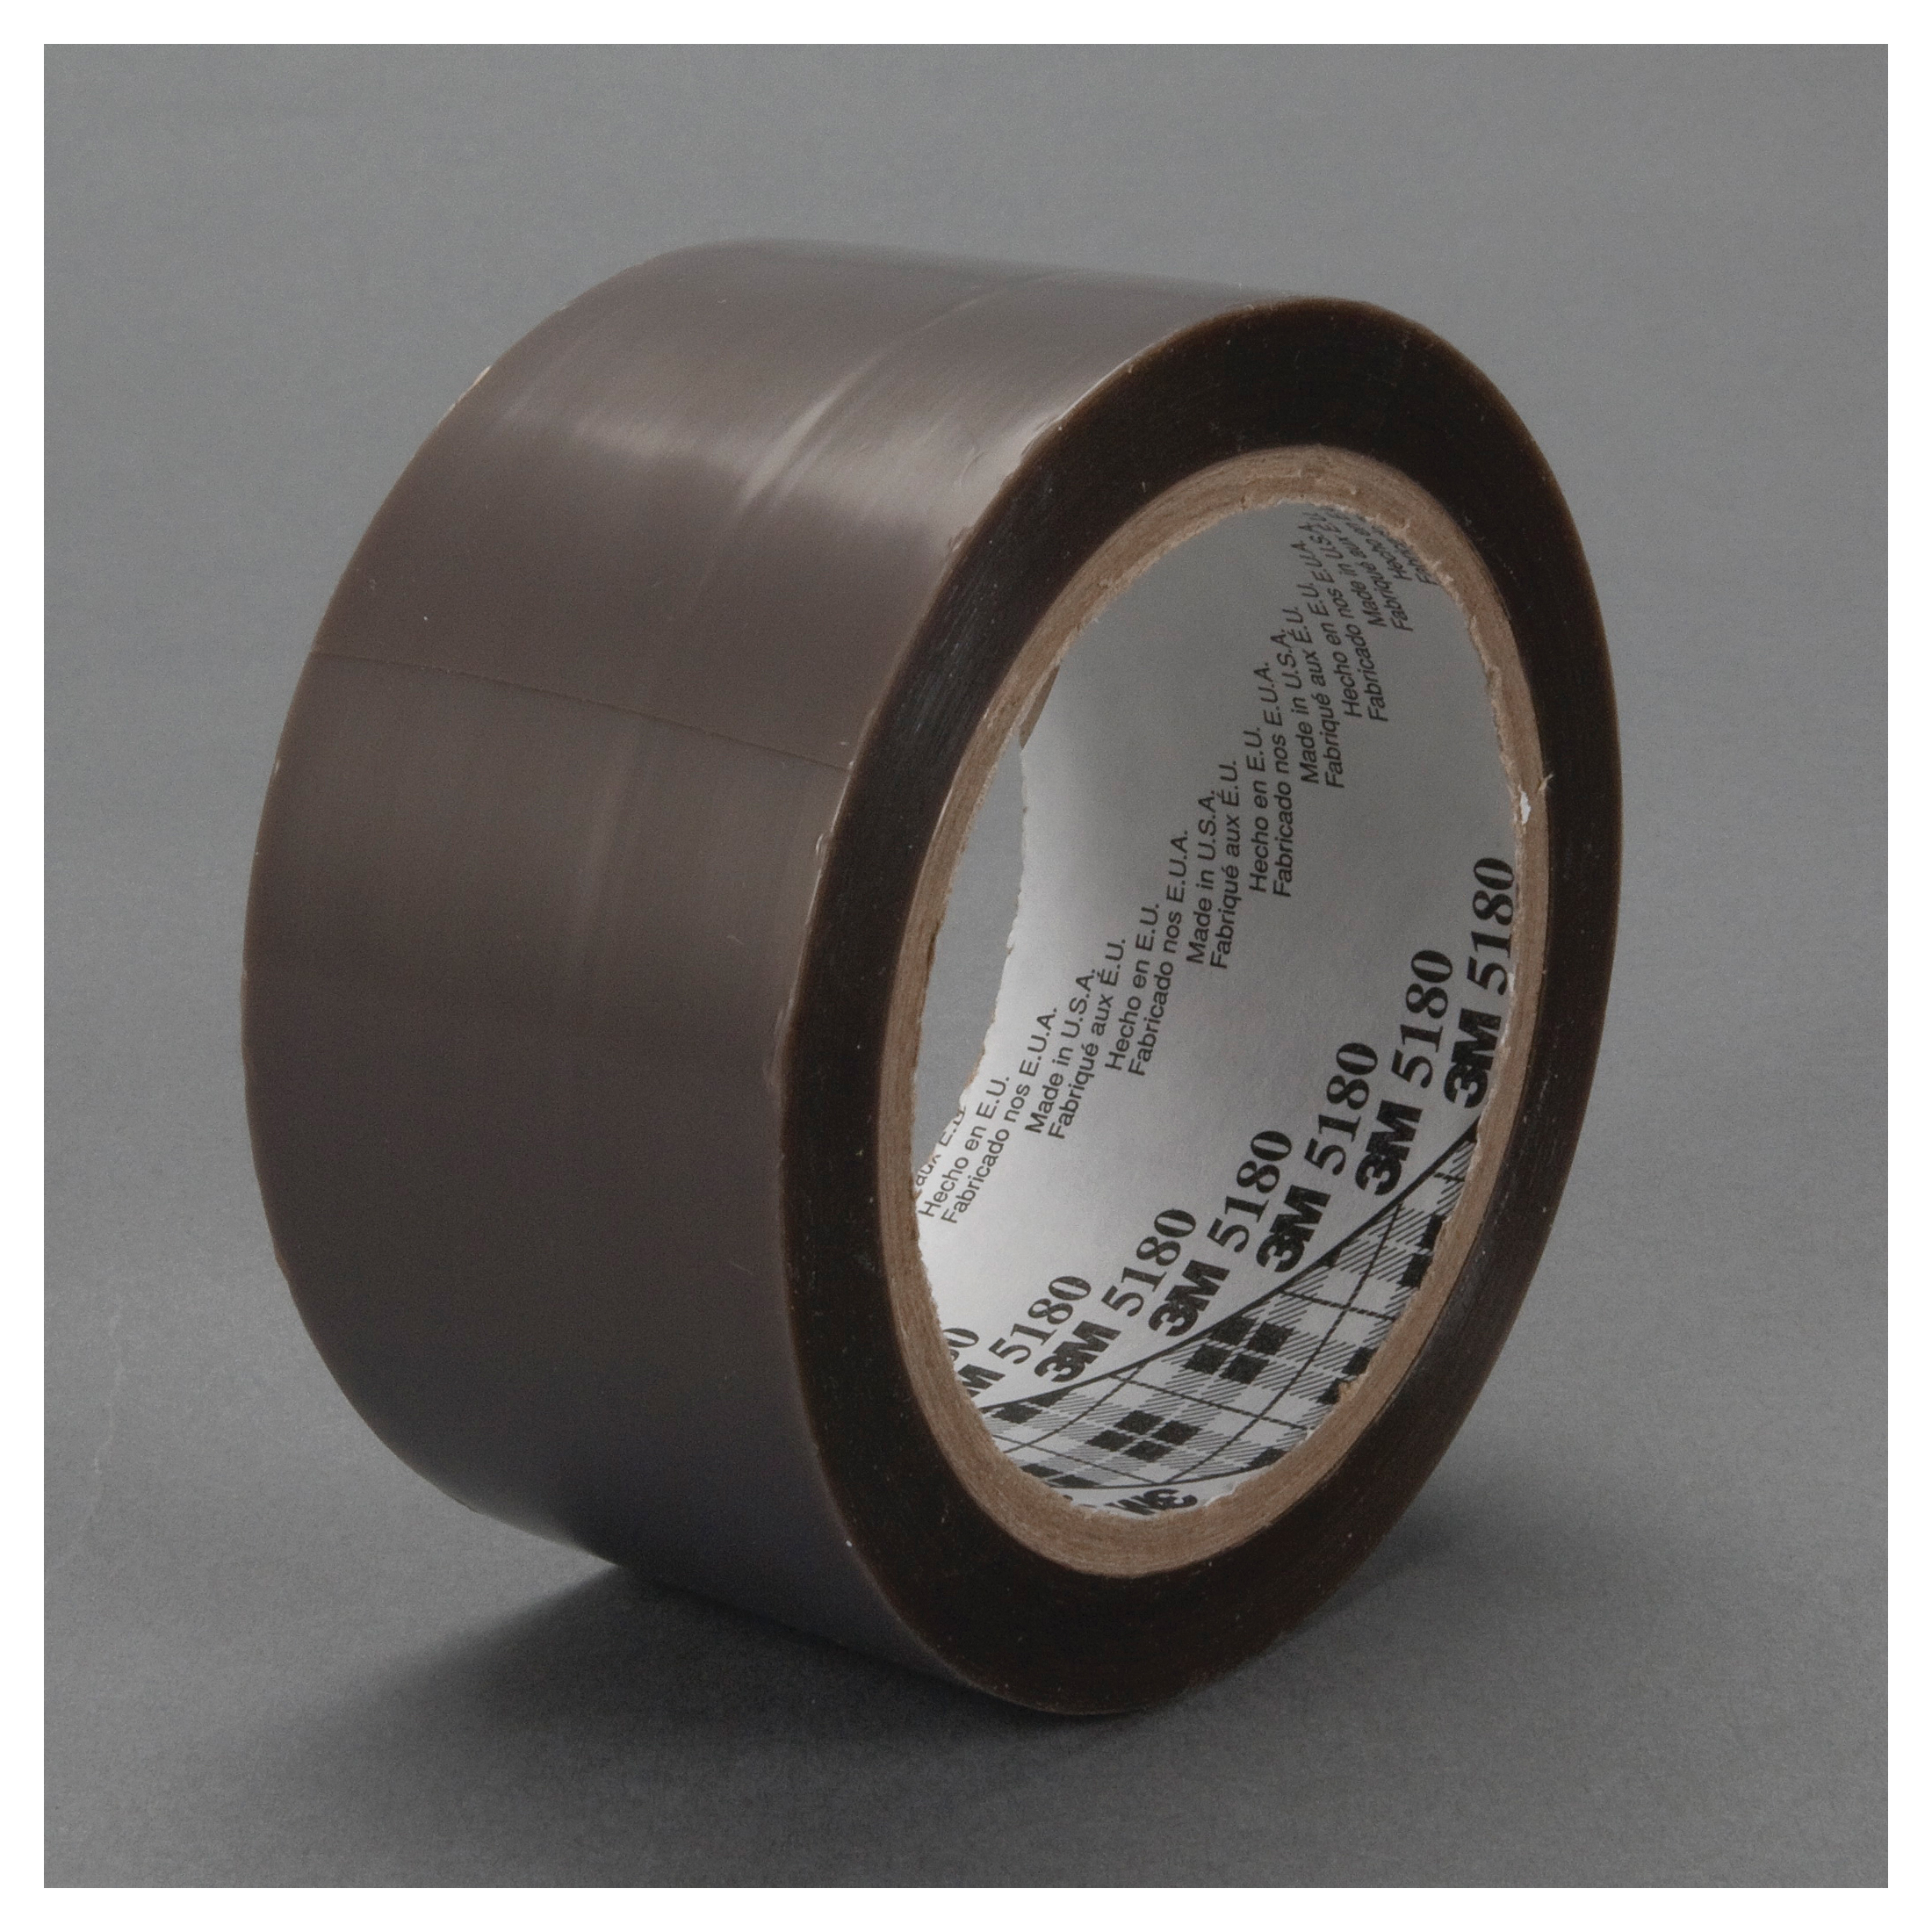 3M™ 021200-48106 General Purpose Film Tape, 36 yd L x 2 in W, 3.5 mil THK, Silicon Adhesive, Skived PTFE Backing, Gray